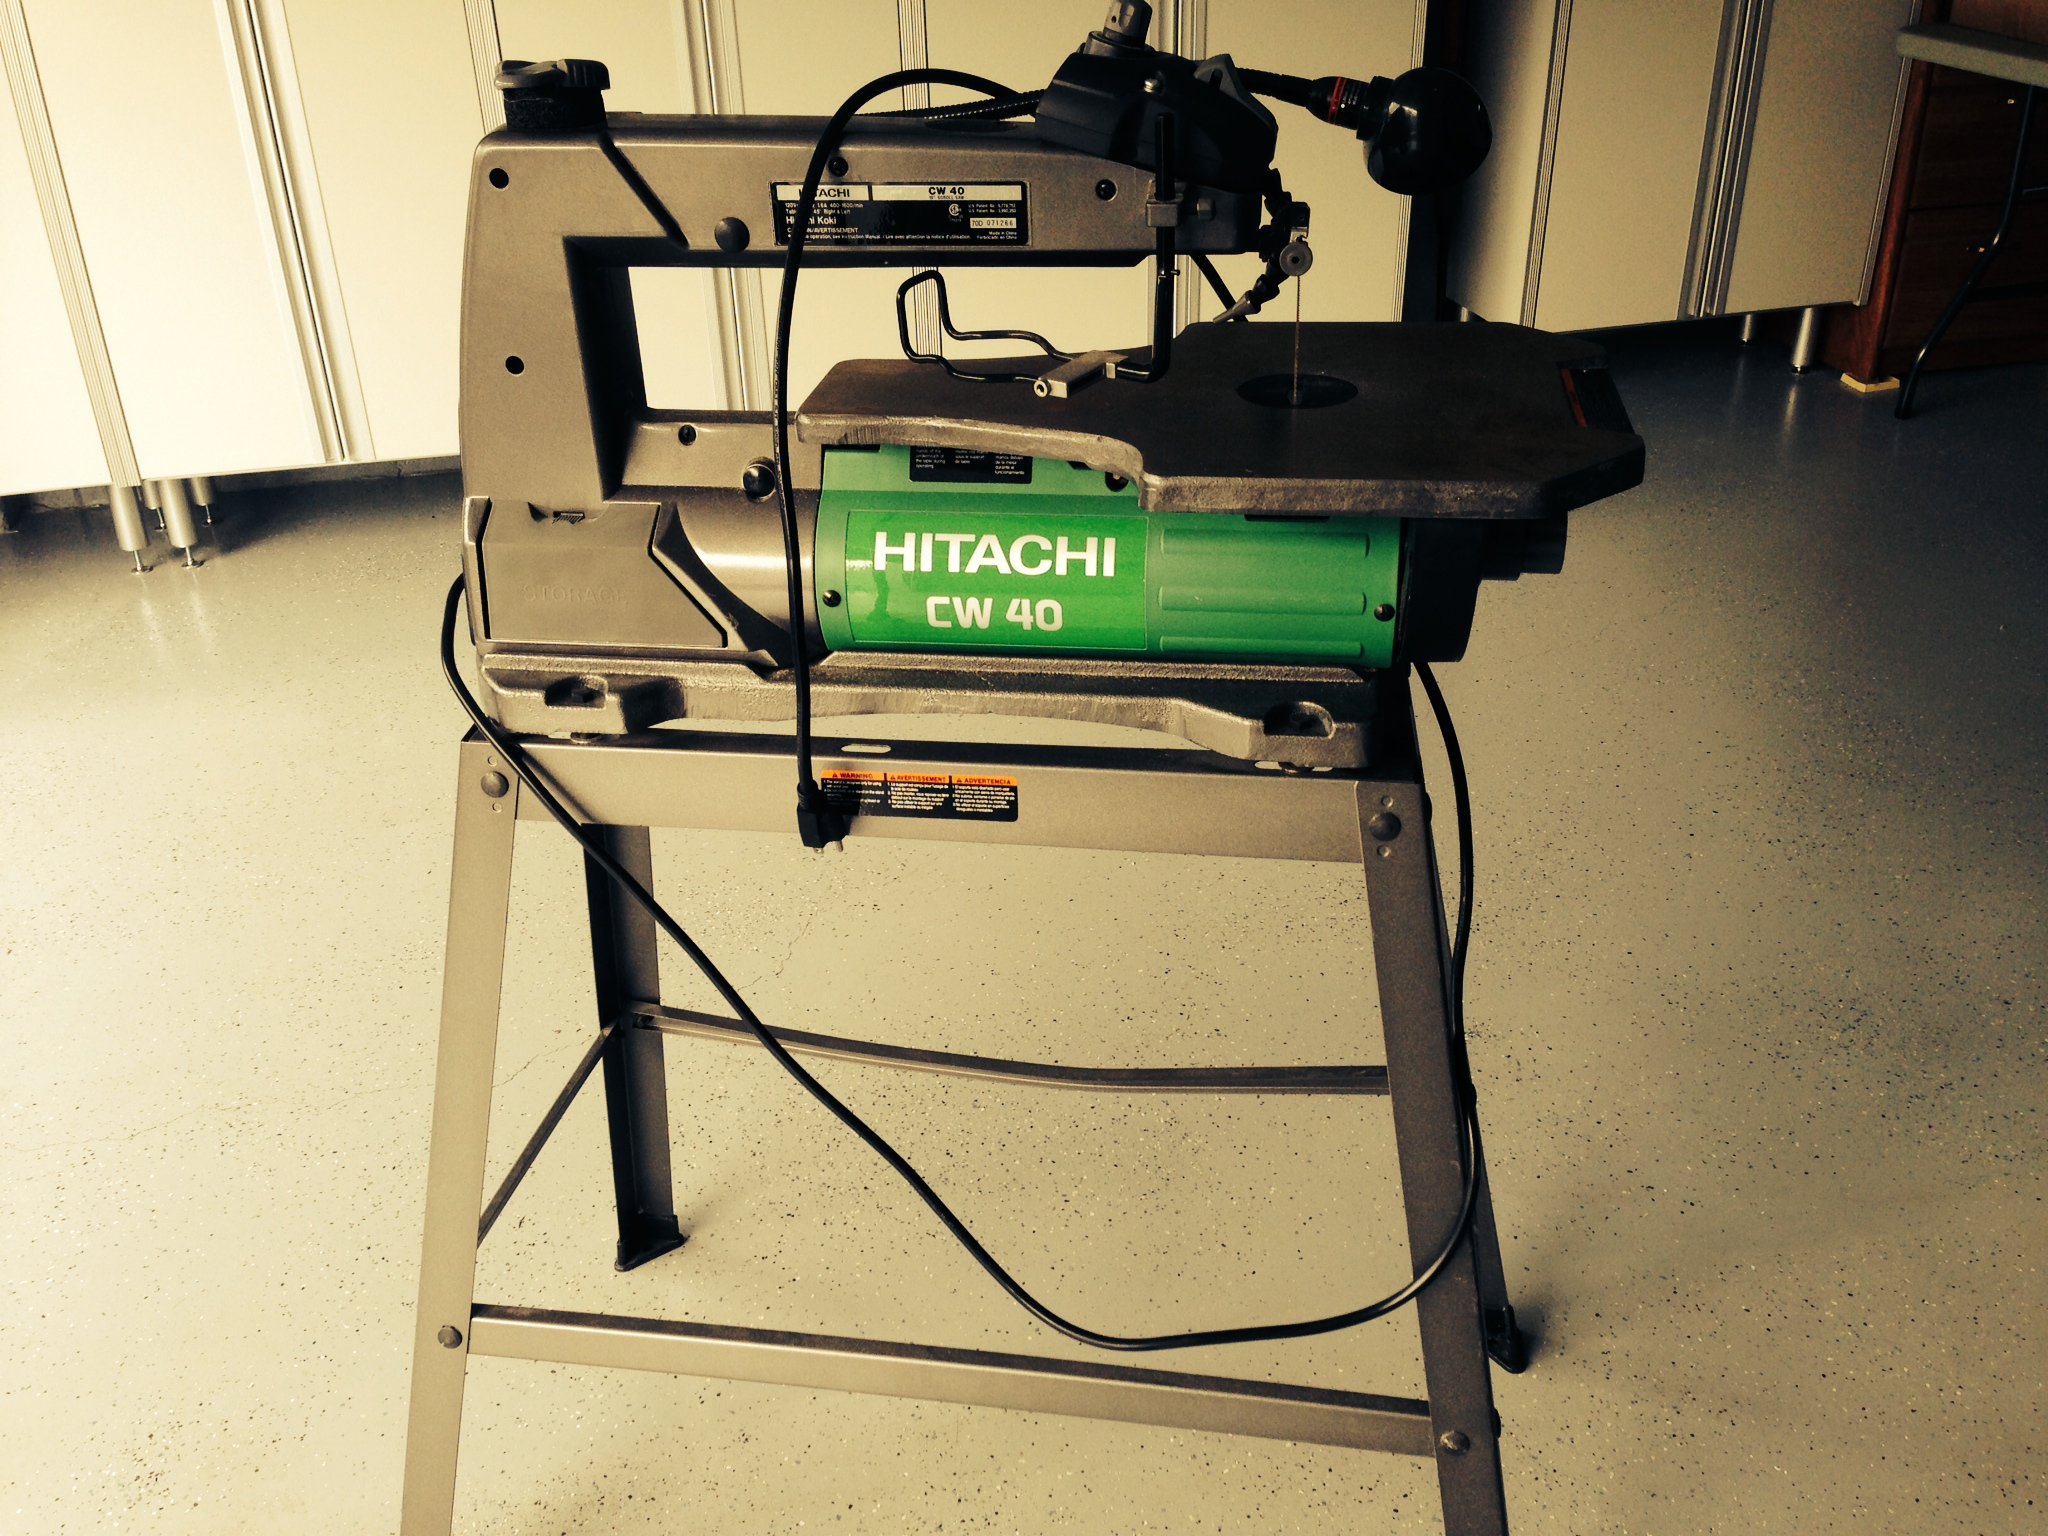 HITACHI CW 40 EXCELLENT LIKE NEW